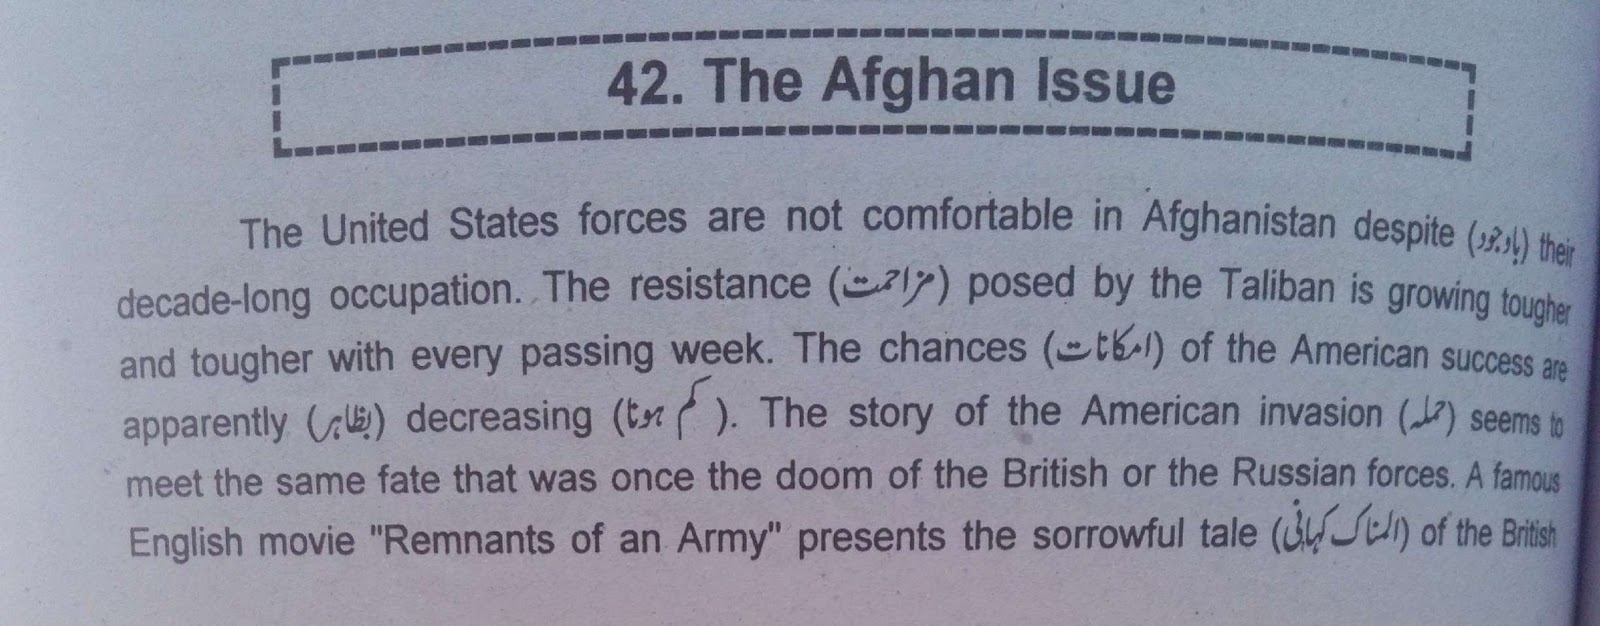 afghan issue in essay in english for primary to higher short essay about essay about war essay topics topic about